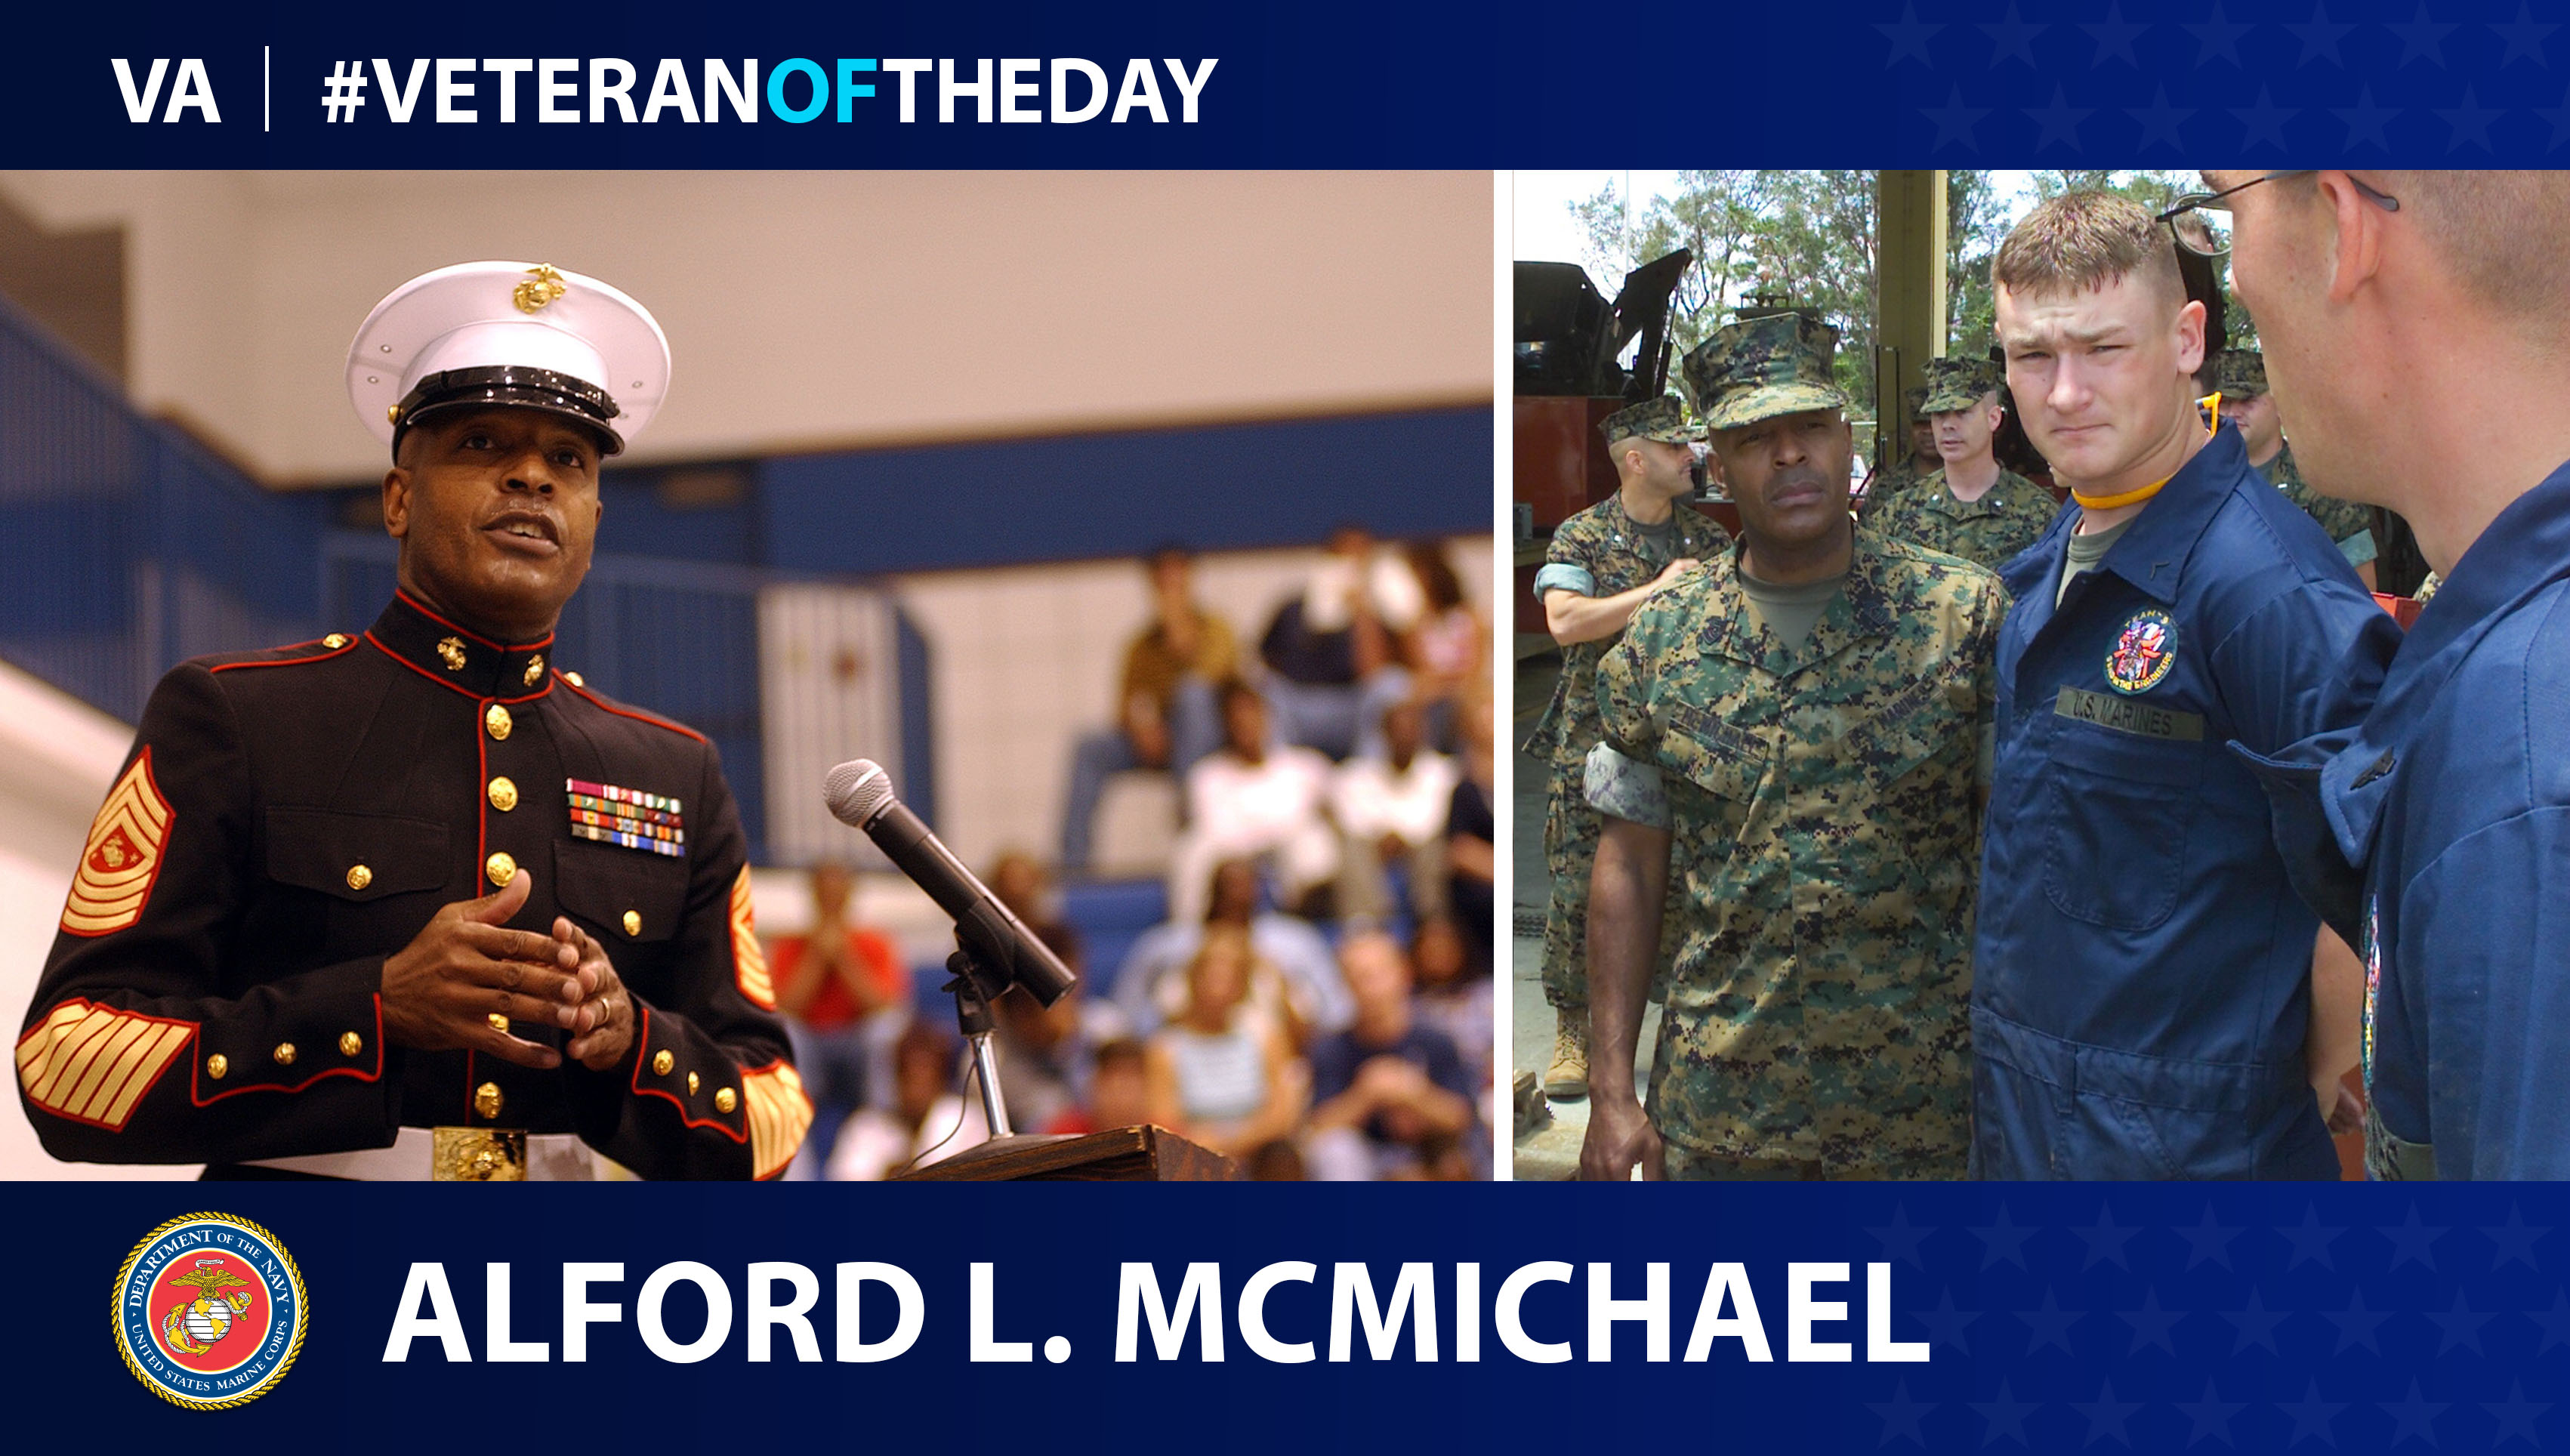 Veteran of the Day...Alford L. McMichael